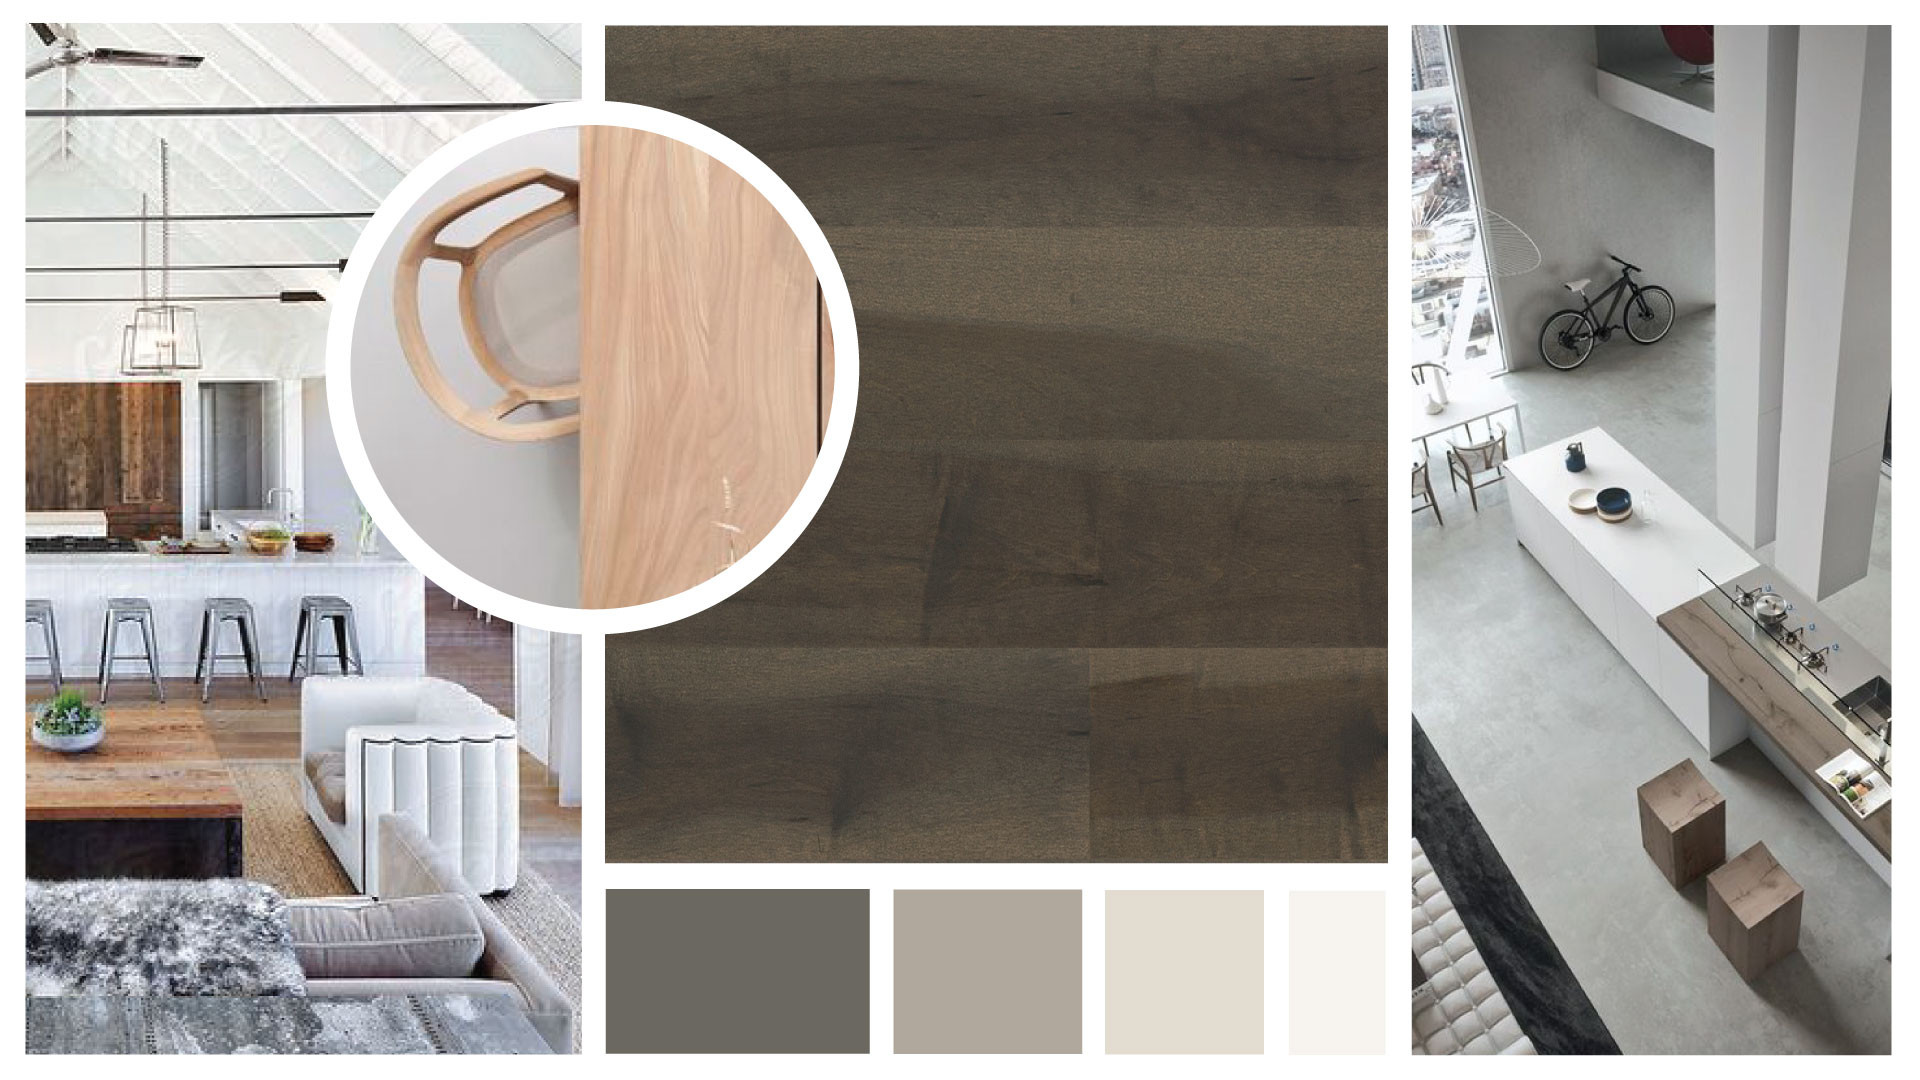 latest hardwood floor trends of 4 latest hardwood flooring trends lauzon flooring intended for for the family centric great room where natural hardwood flooring unifies the kitchen family and dining rooms into a single welcoming living space